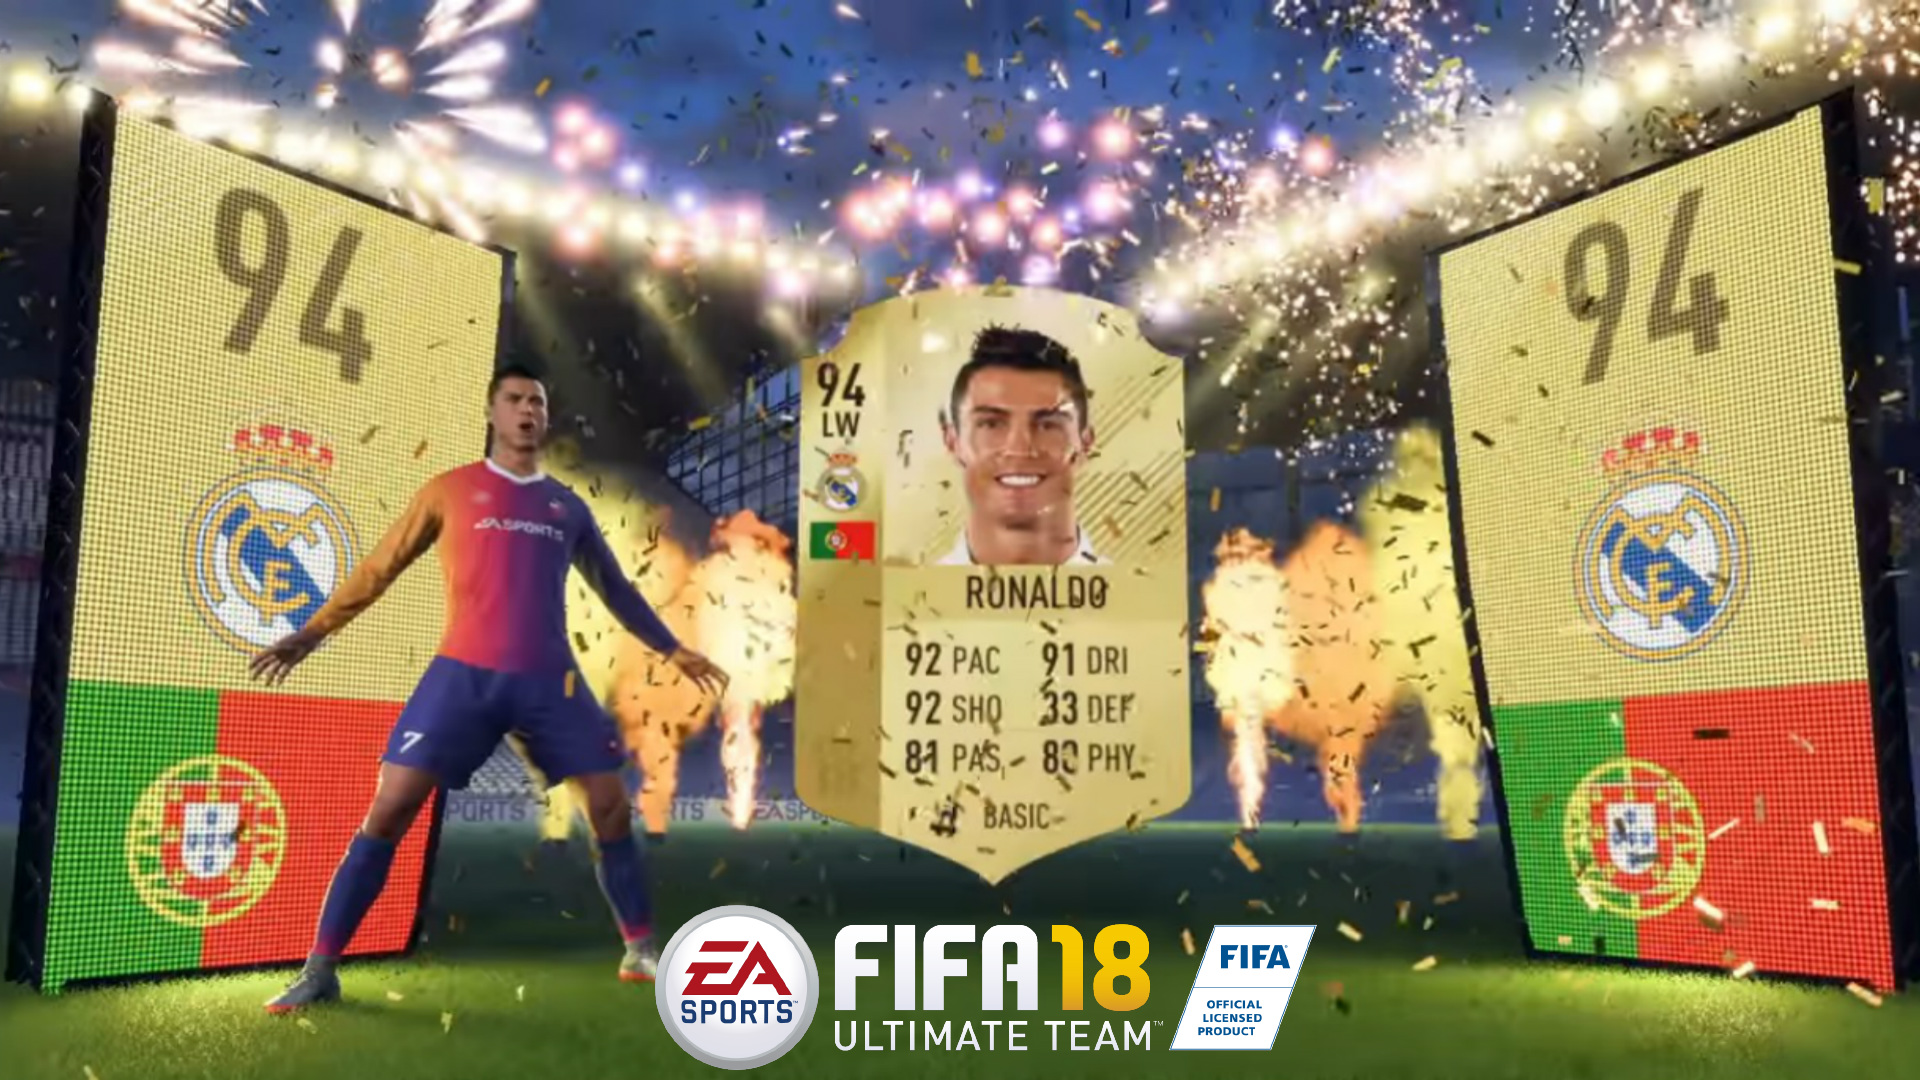 How to get players stored in club fifa 18 stephan el shaarawy stats fifa 18